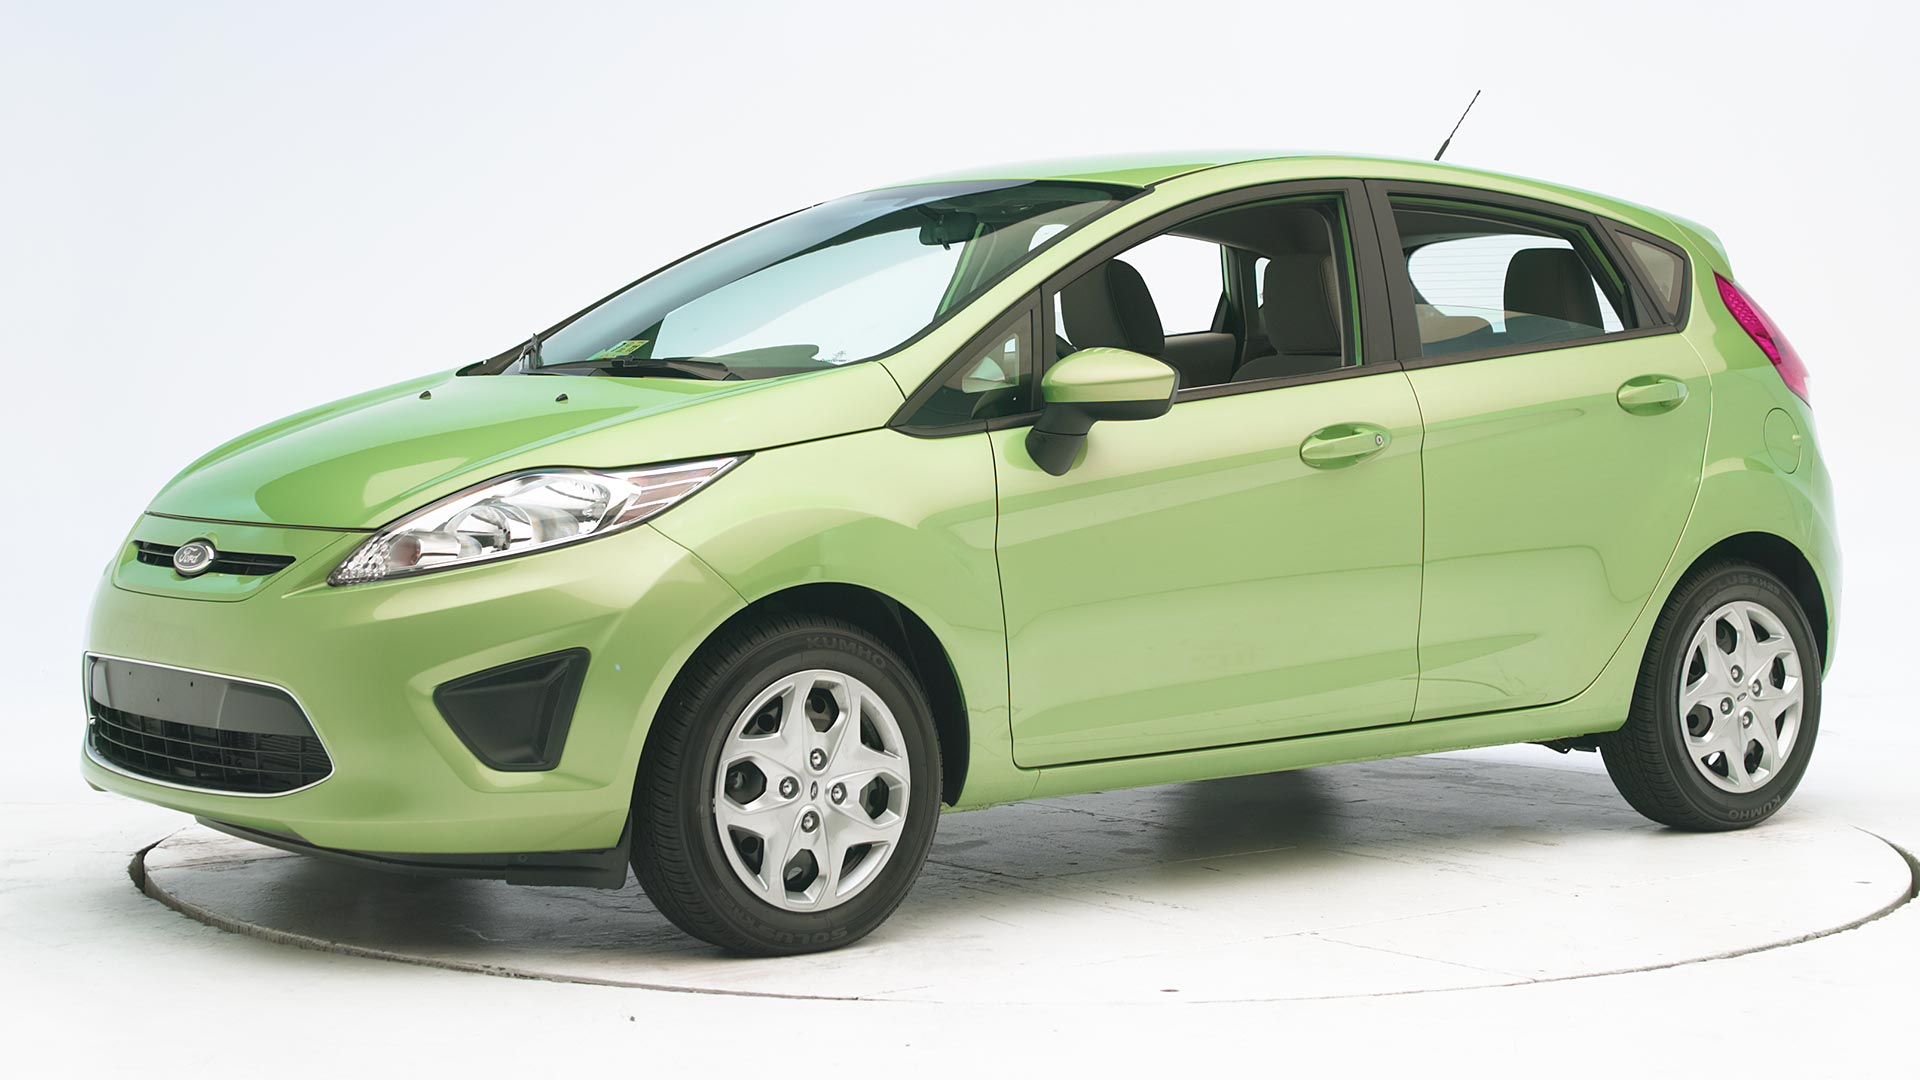 2019 Ford Fiesta 4-door hatchback